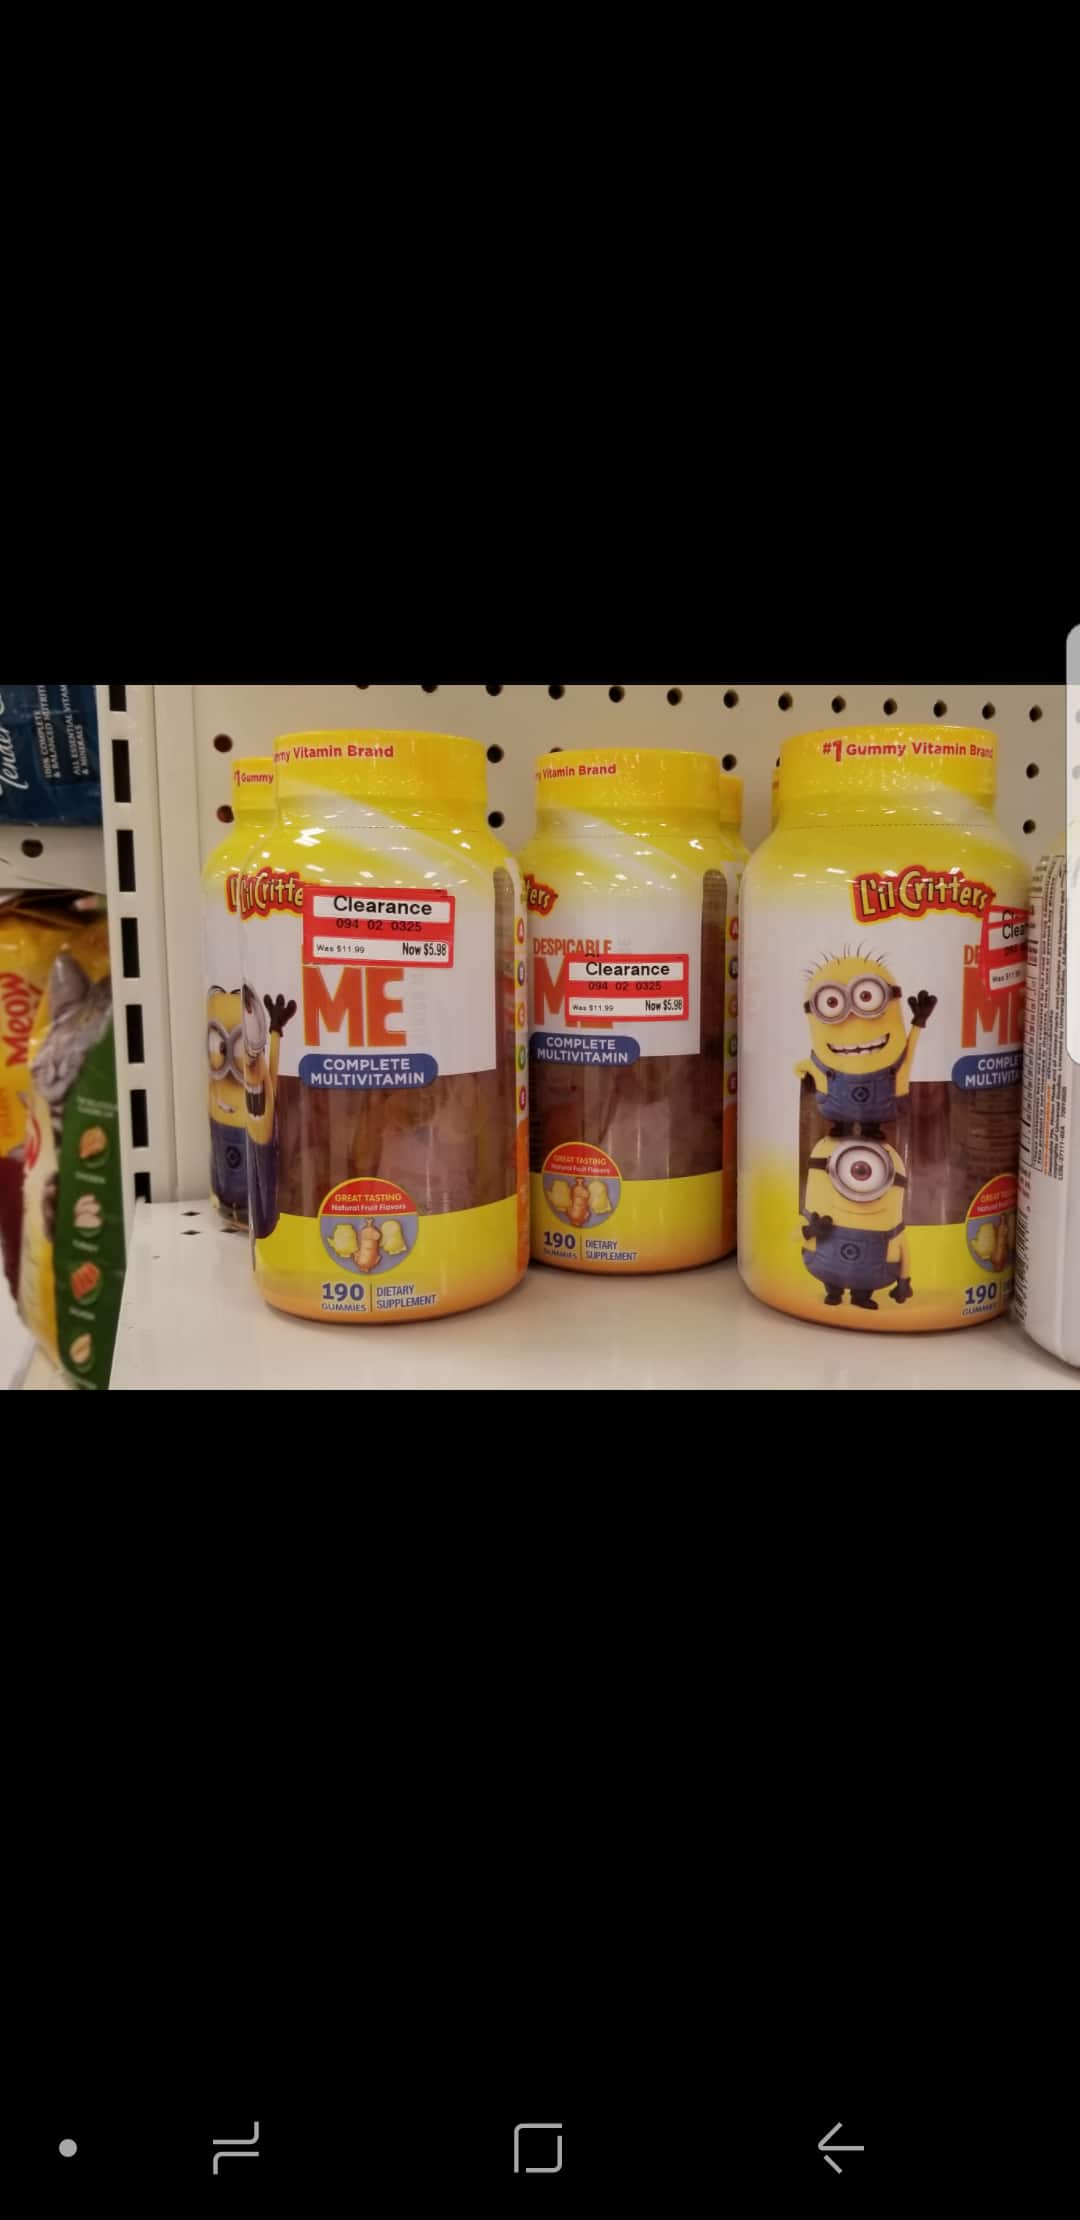 YMMV Target  lil critters kids vitamin Clearance 50% off and plus $5 giftcard if buy 2 $3.5